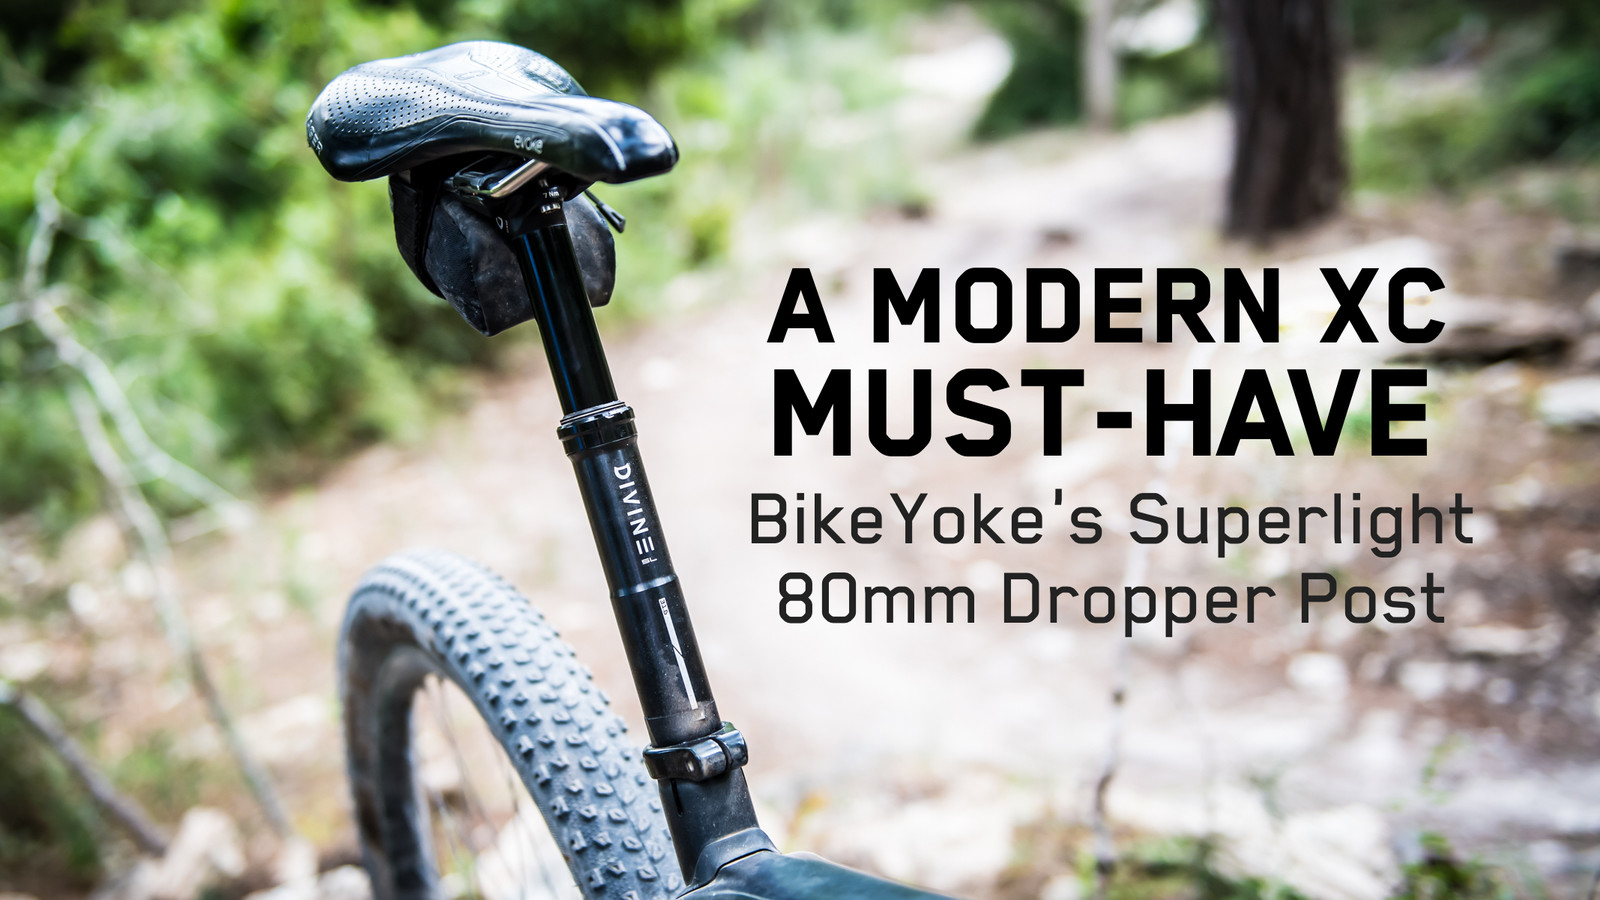 Bikeyoke Divine Sl Seatpost Reviews Comparisons Specs